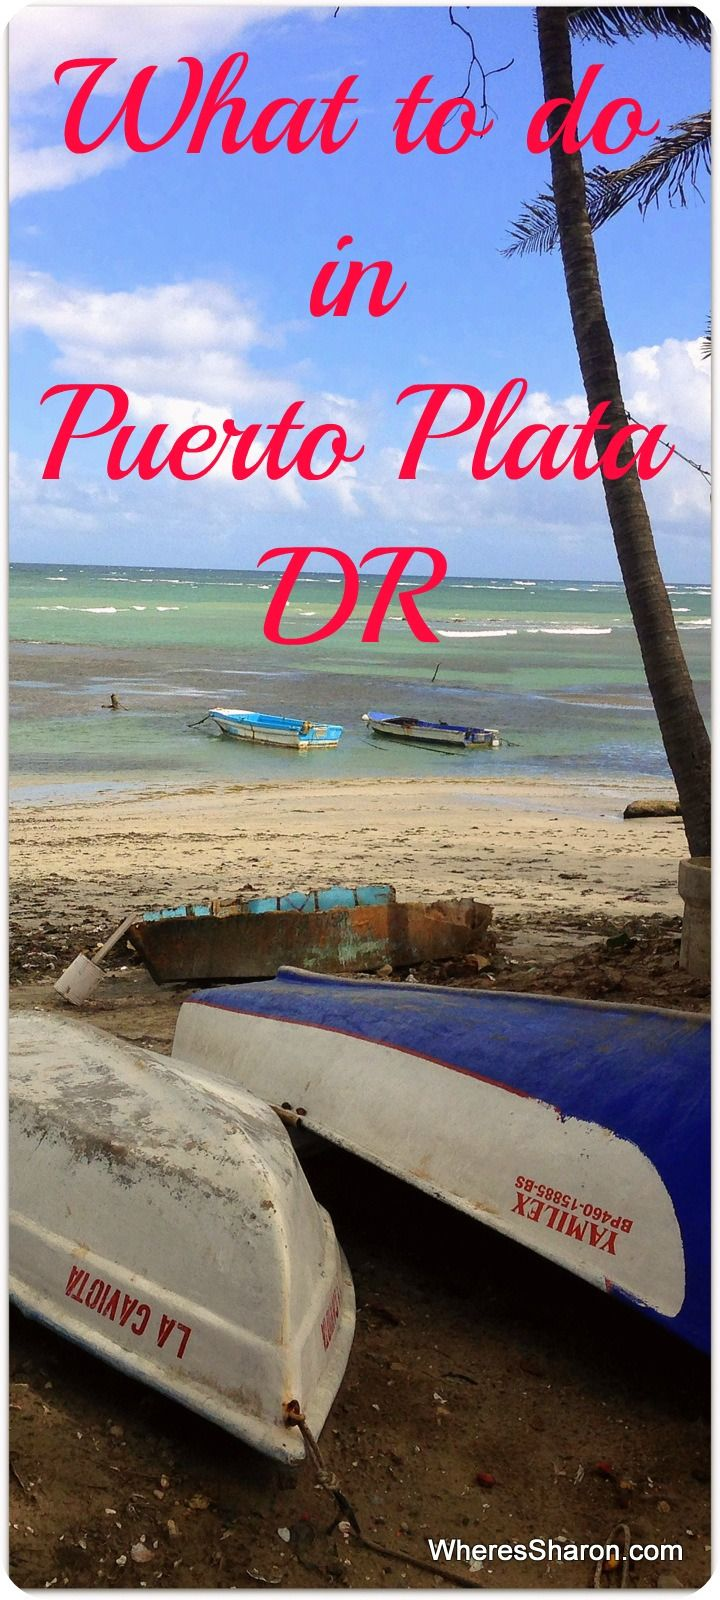 What to do in Puerto Plata, DR!!